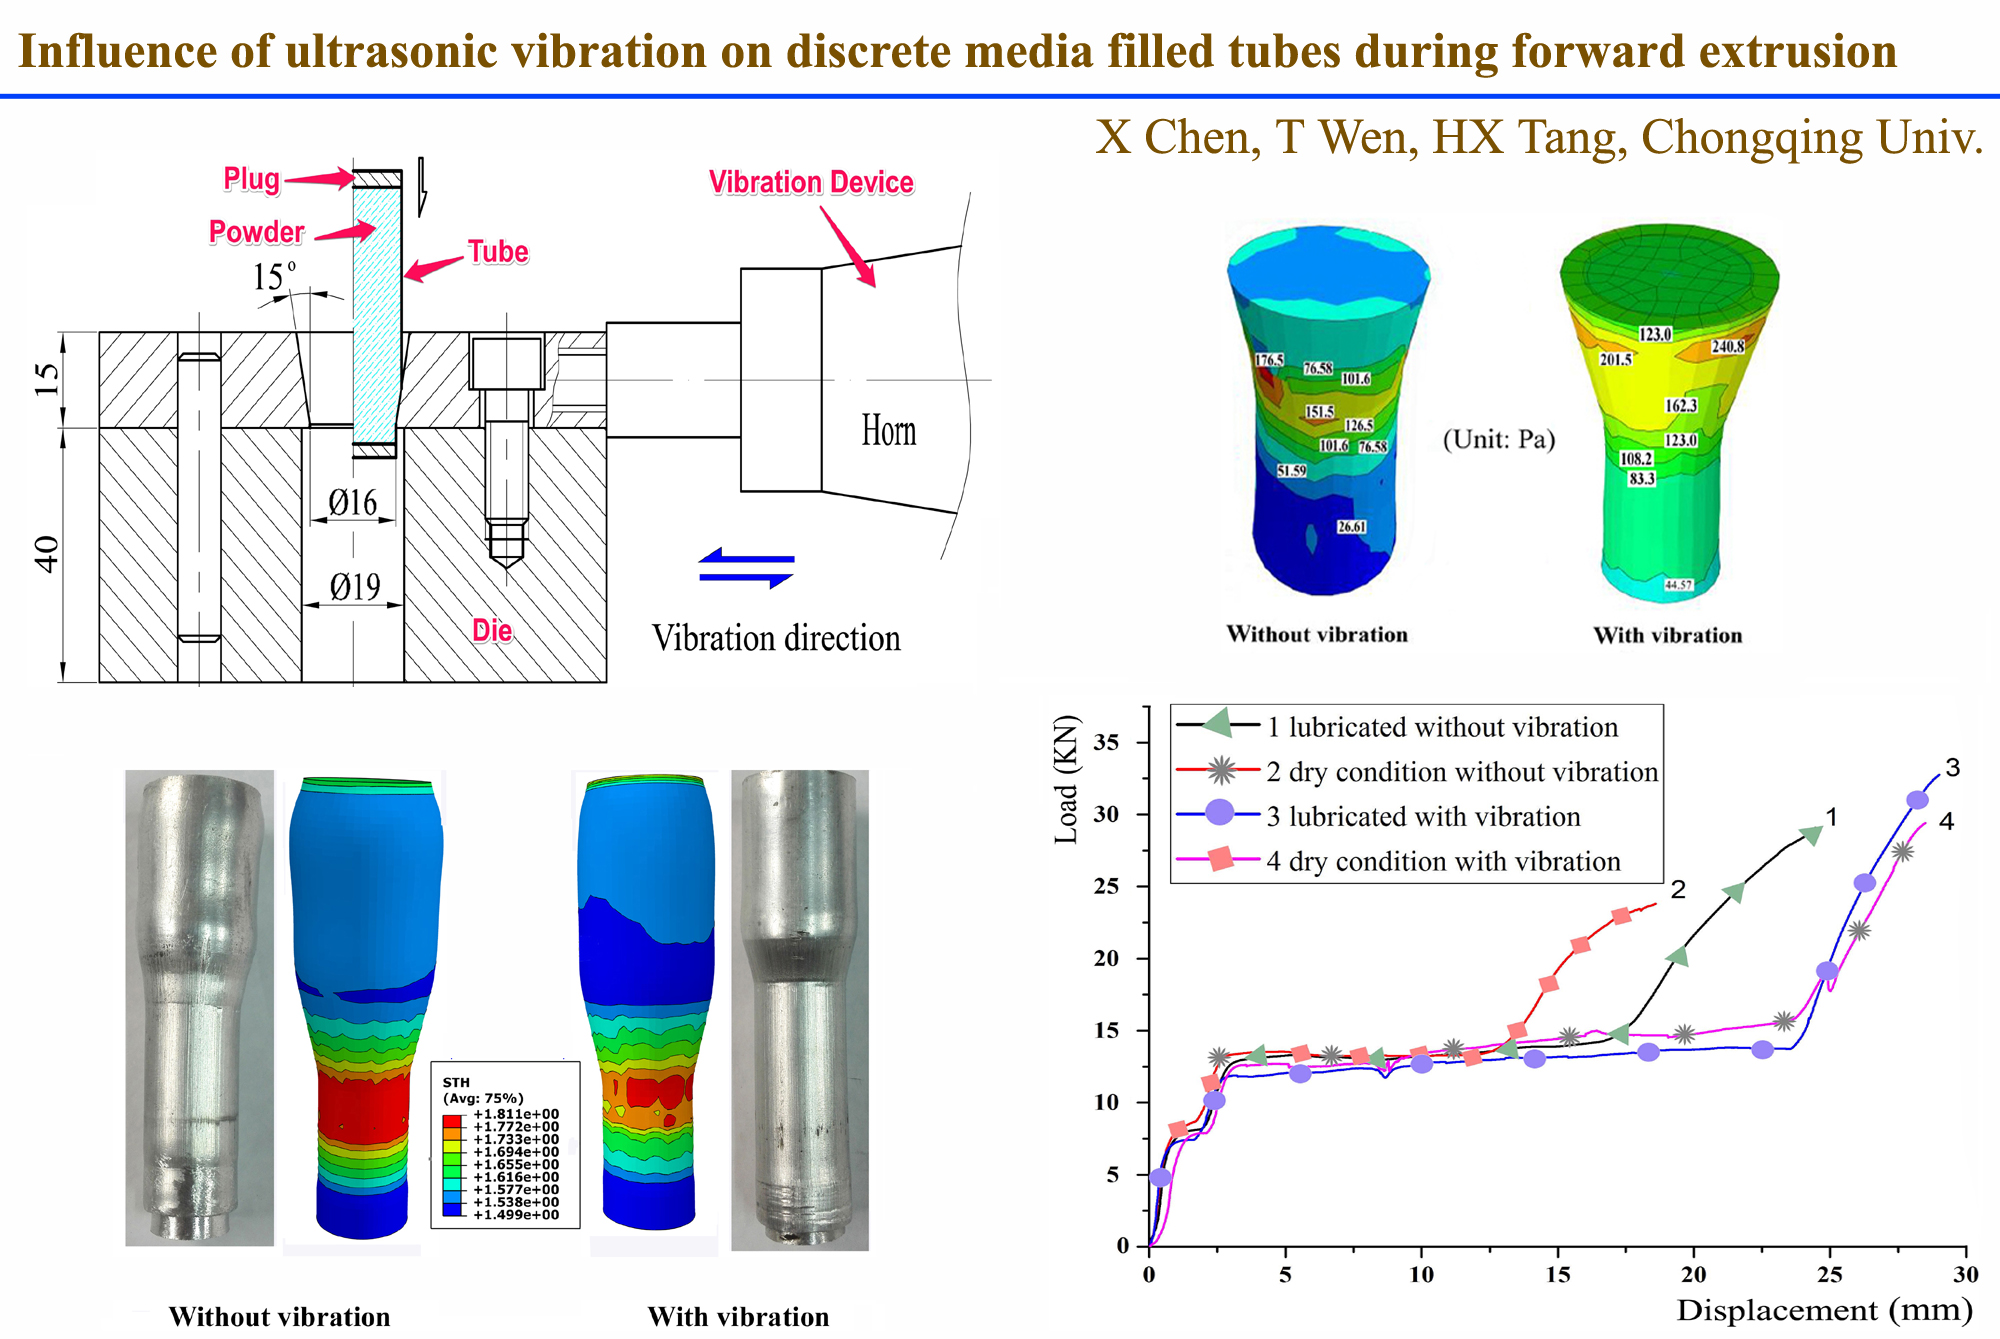 Influence of ultrasonic vibration on discrete media filled tubes during forward extrusion